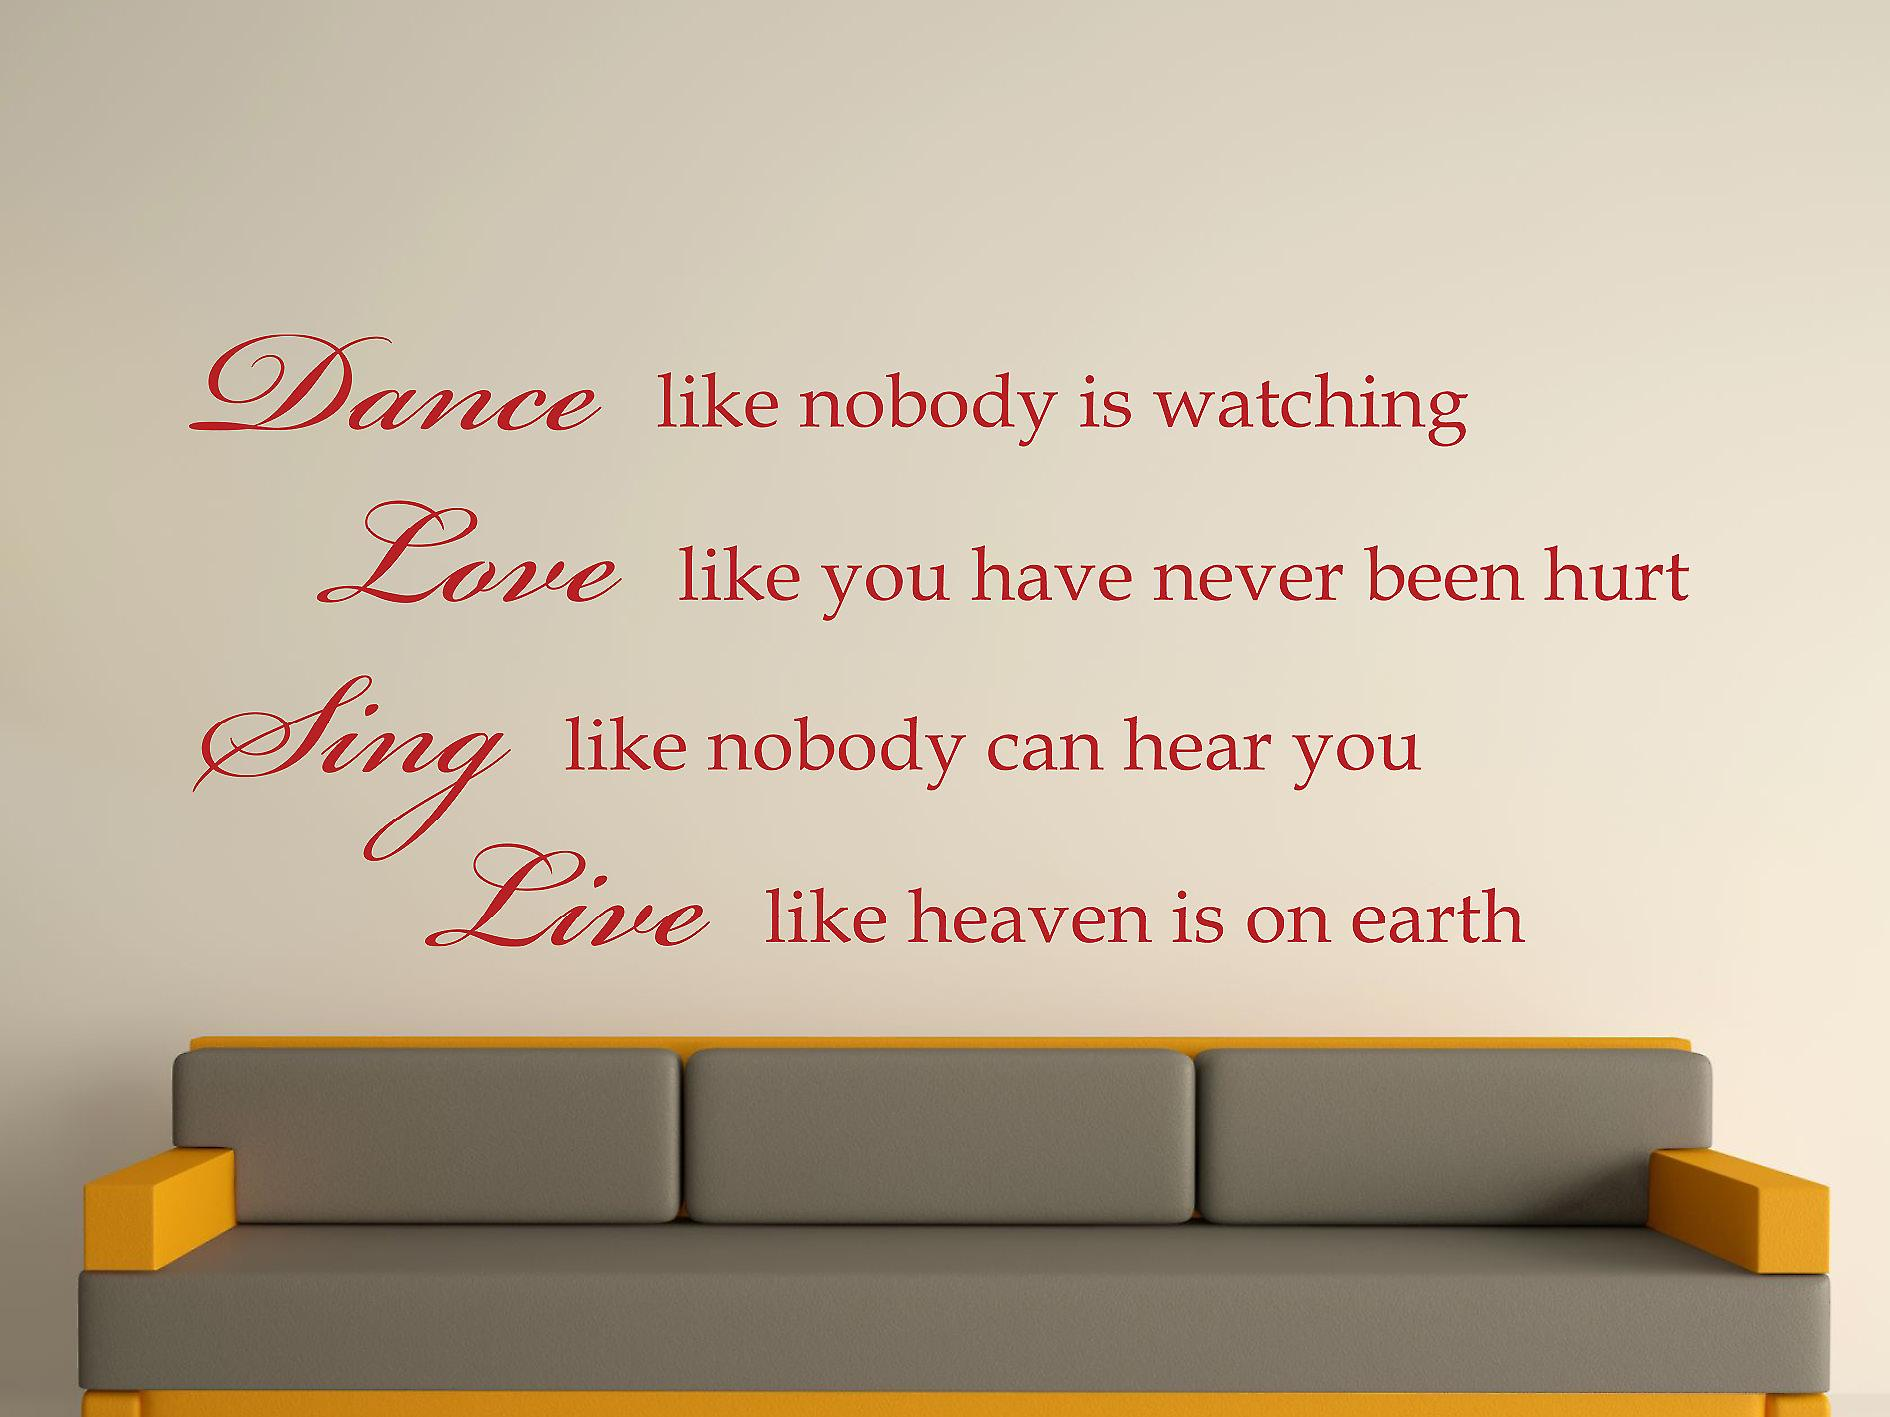 Dance Like Nobody Is Watching Wall Art Sticker - Dark Red